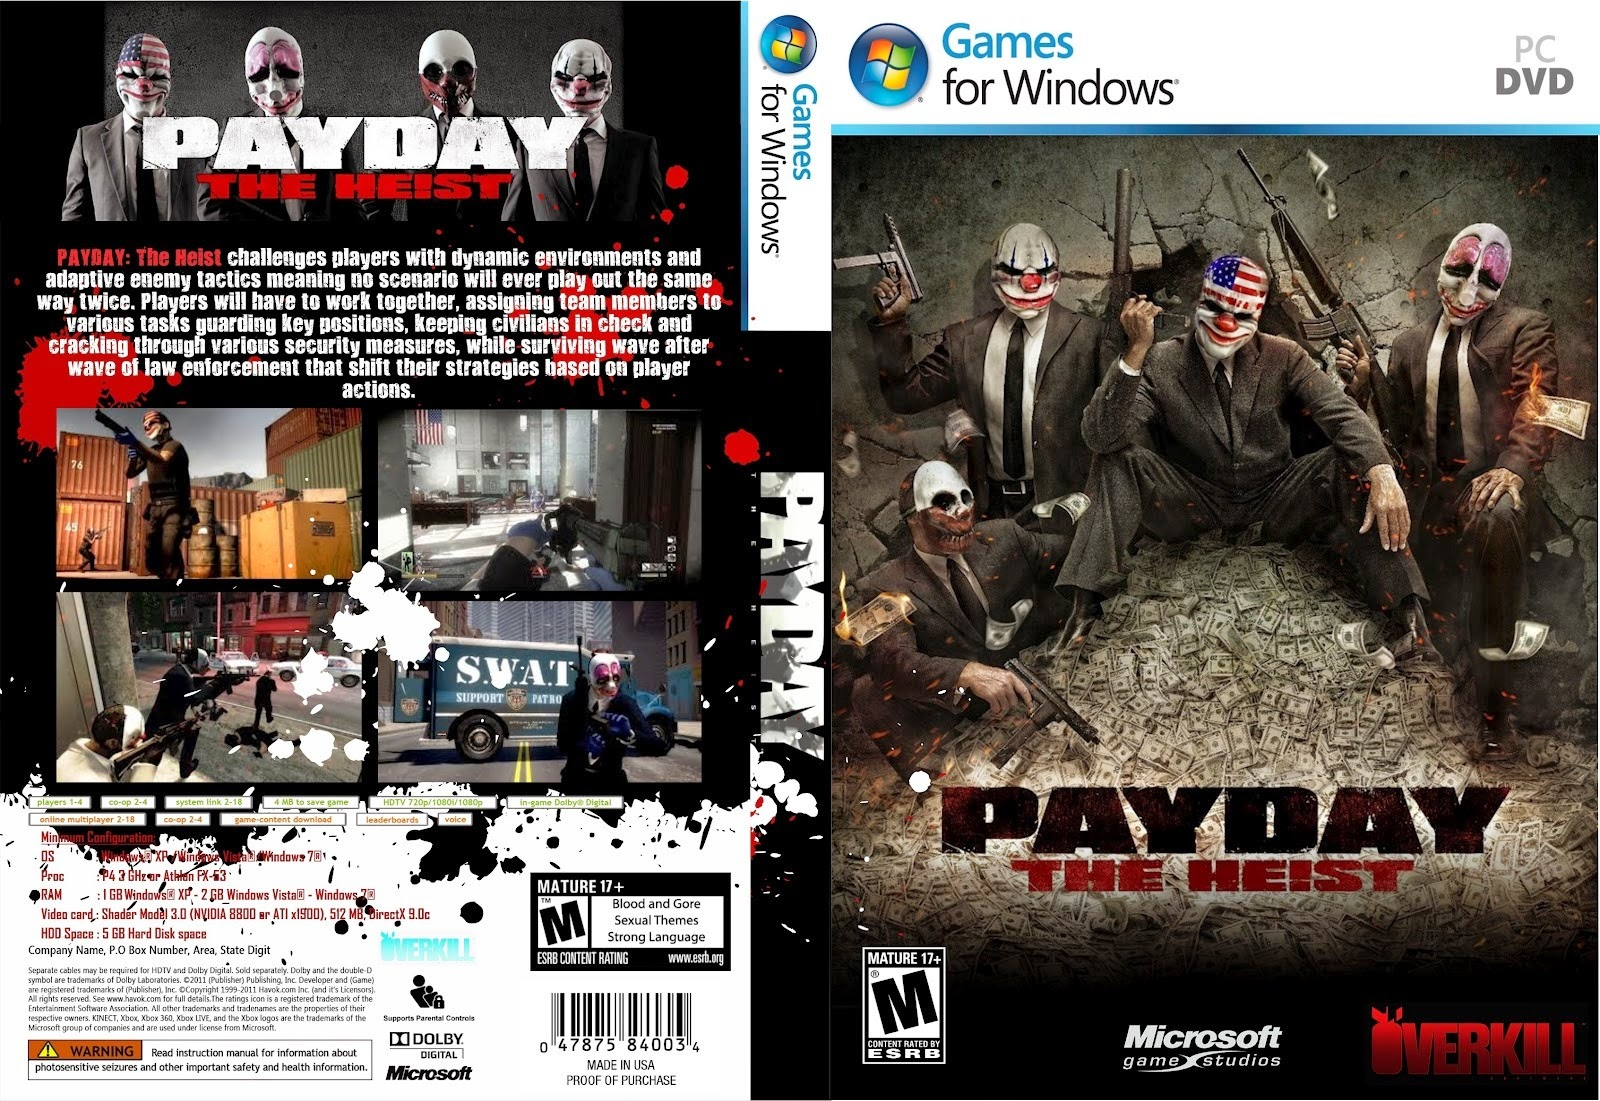 Payday The Heist Free Download FULL Version PC Game